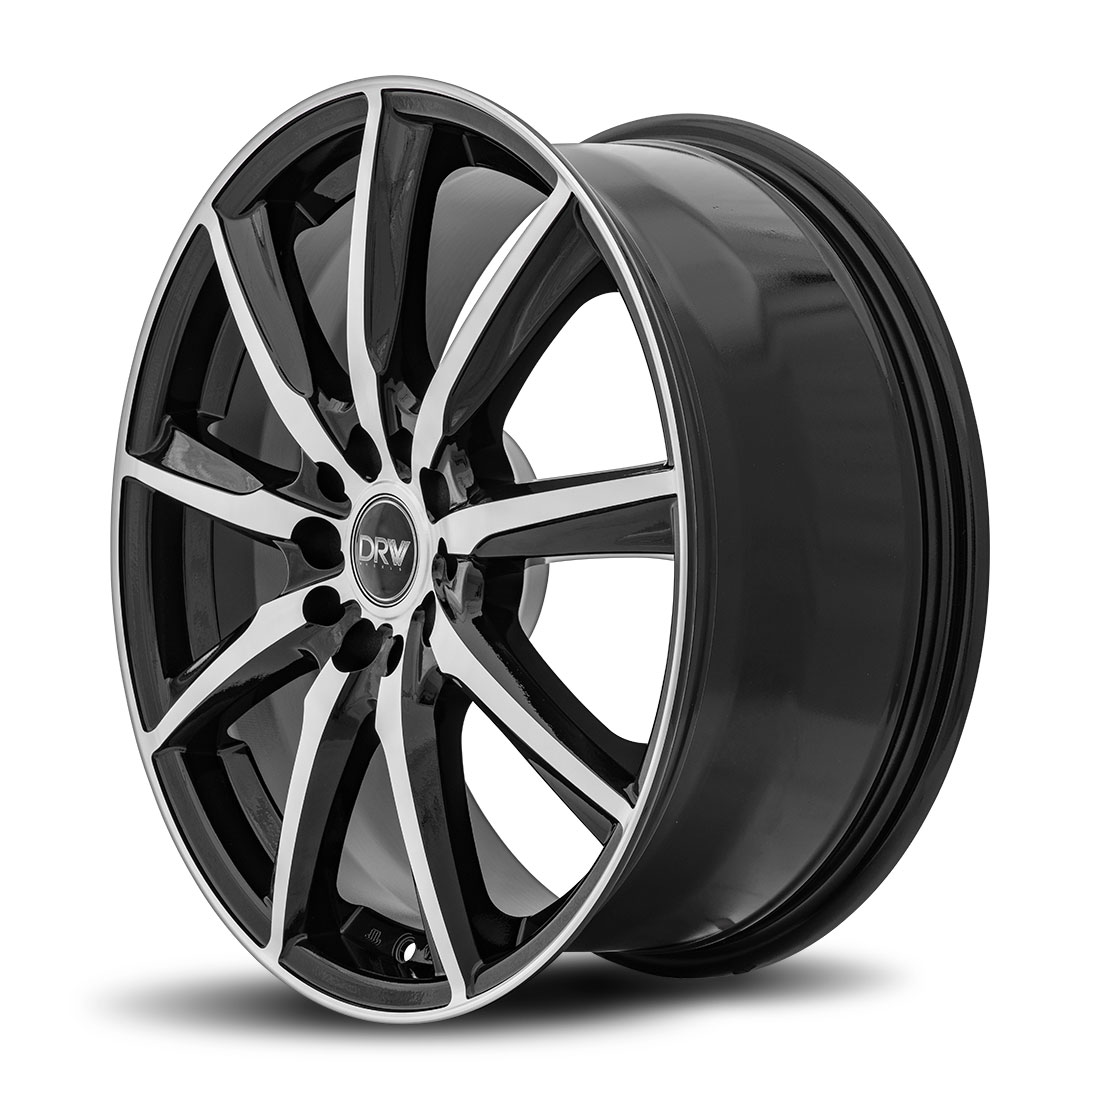 DRW D18 18x7.5 Gloss Black Machine Face